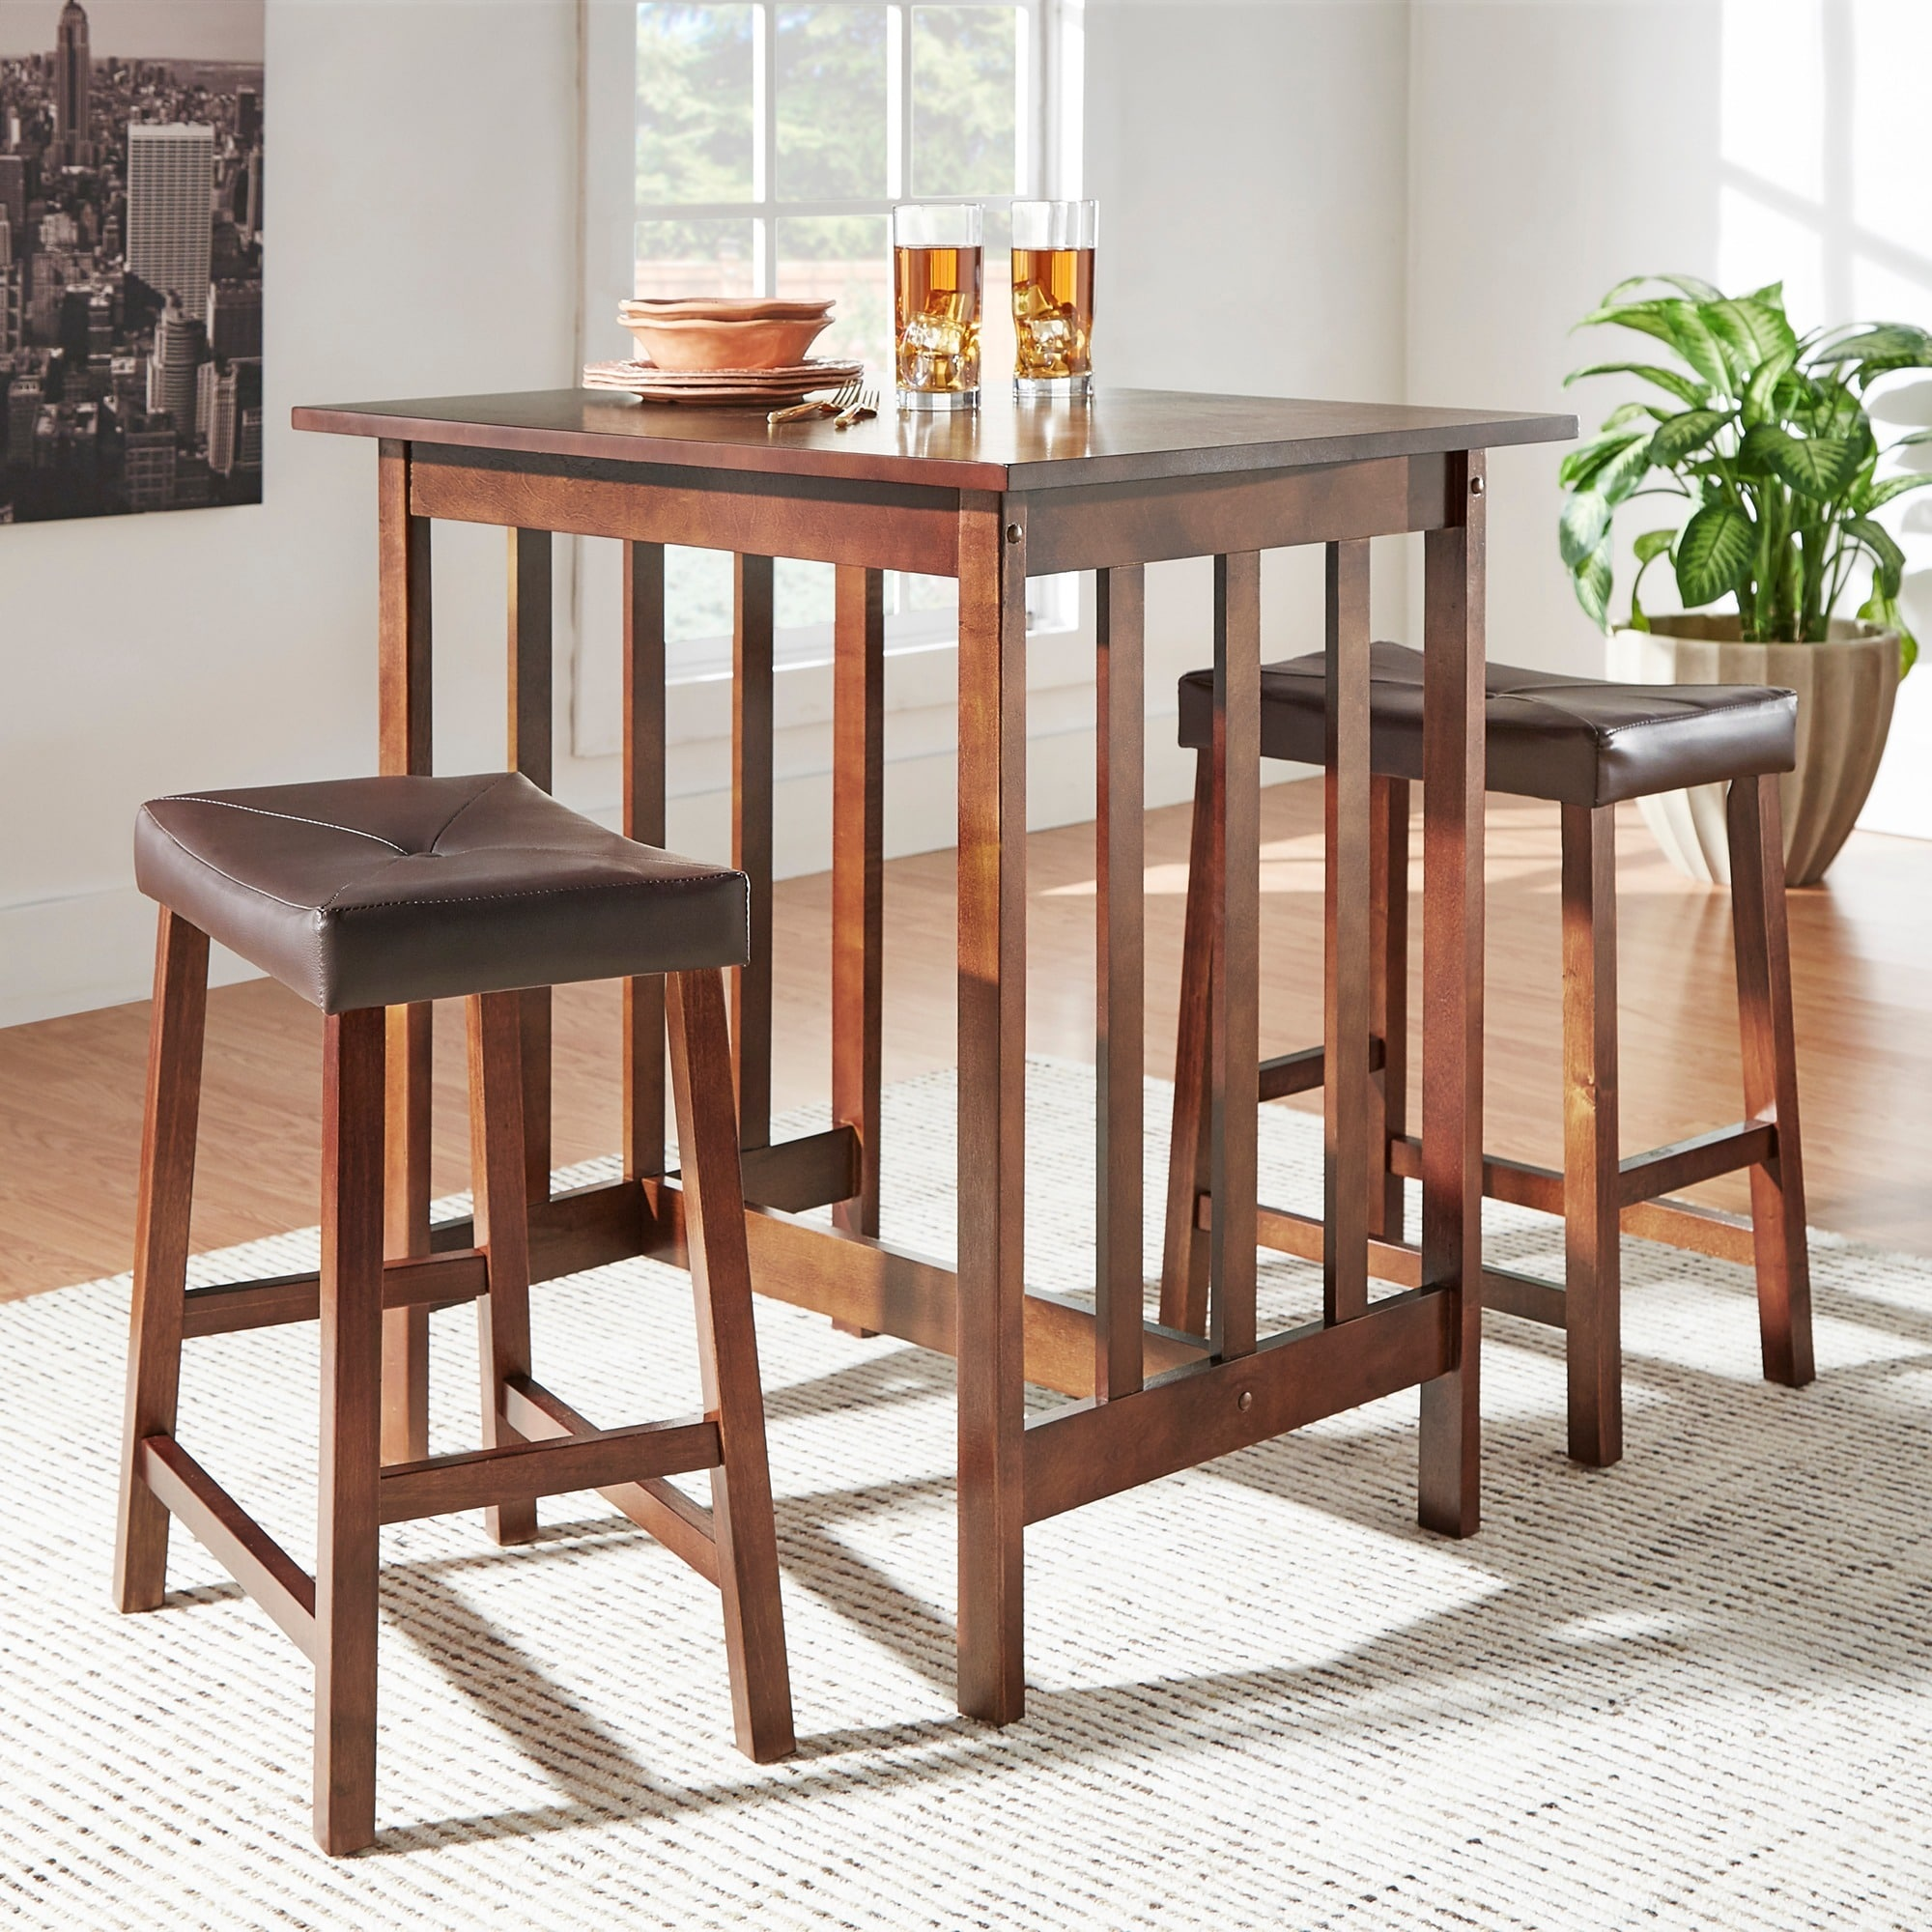 Nova-3-piece-Kitchen-Counter-Height-Dinette-Set-